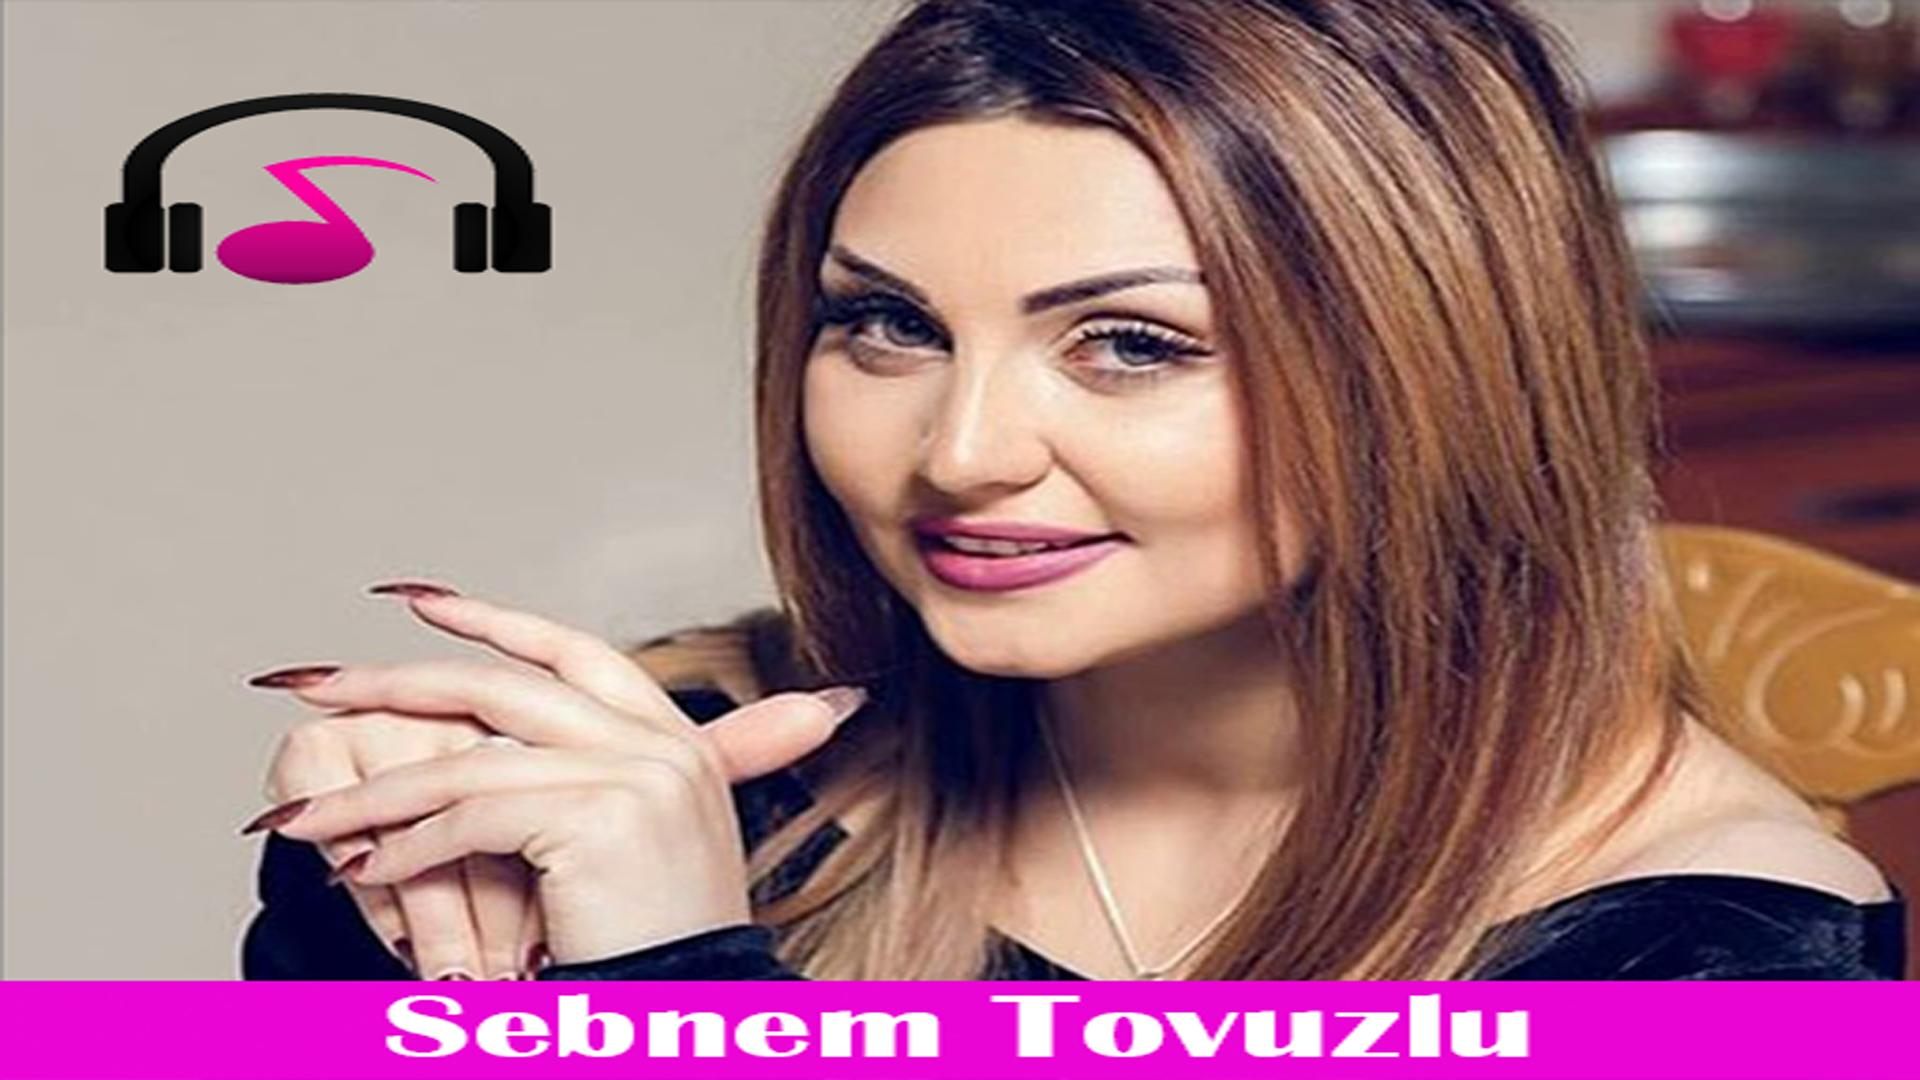 Sebnem Tovuzlu Internet Olmadan For Android Apk Download